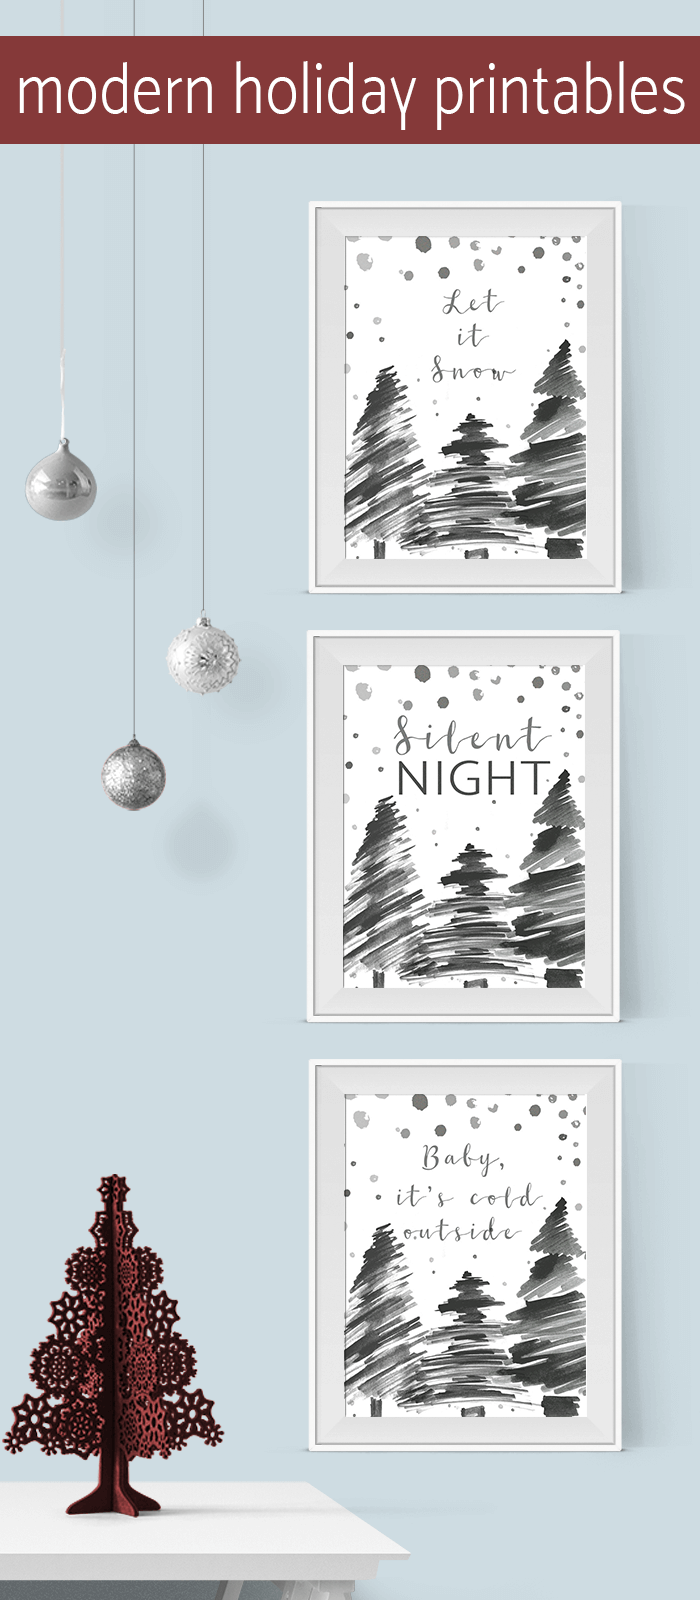 Get these free modern holiday printables AND 10 ways to use printables this holiday season!